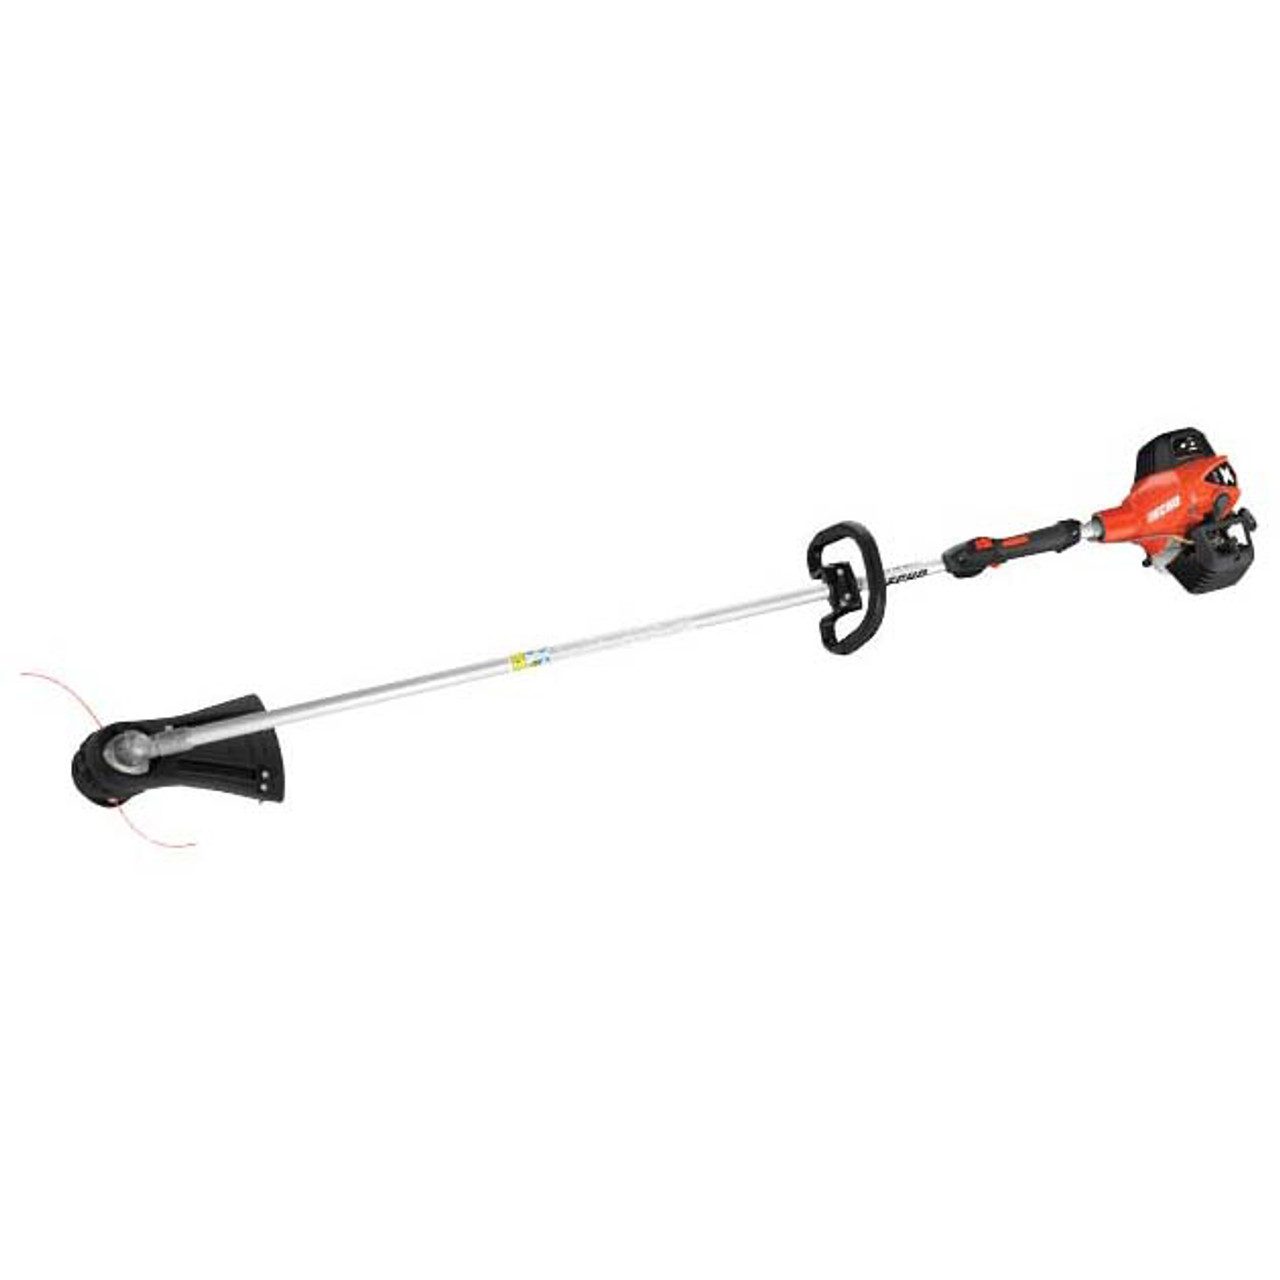 ECHO SRM-2620 25.4cc 2-Stroke Commercial Straight Shaft String Trimmer Image